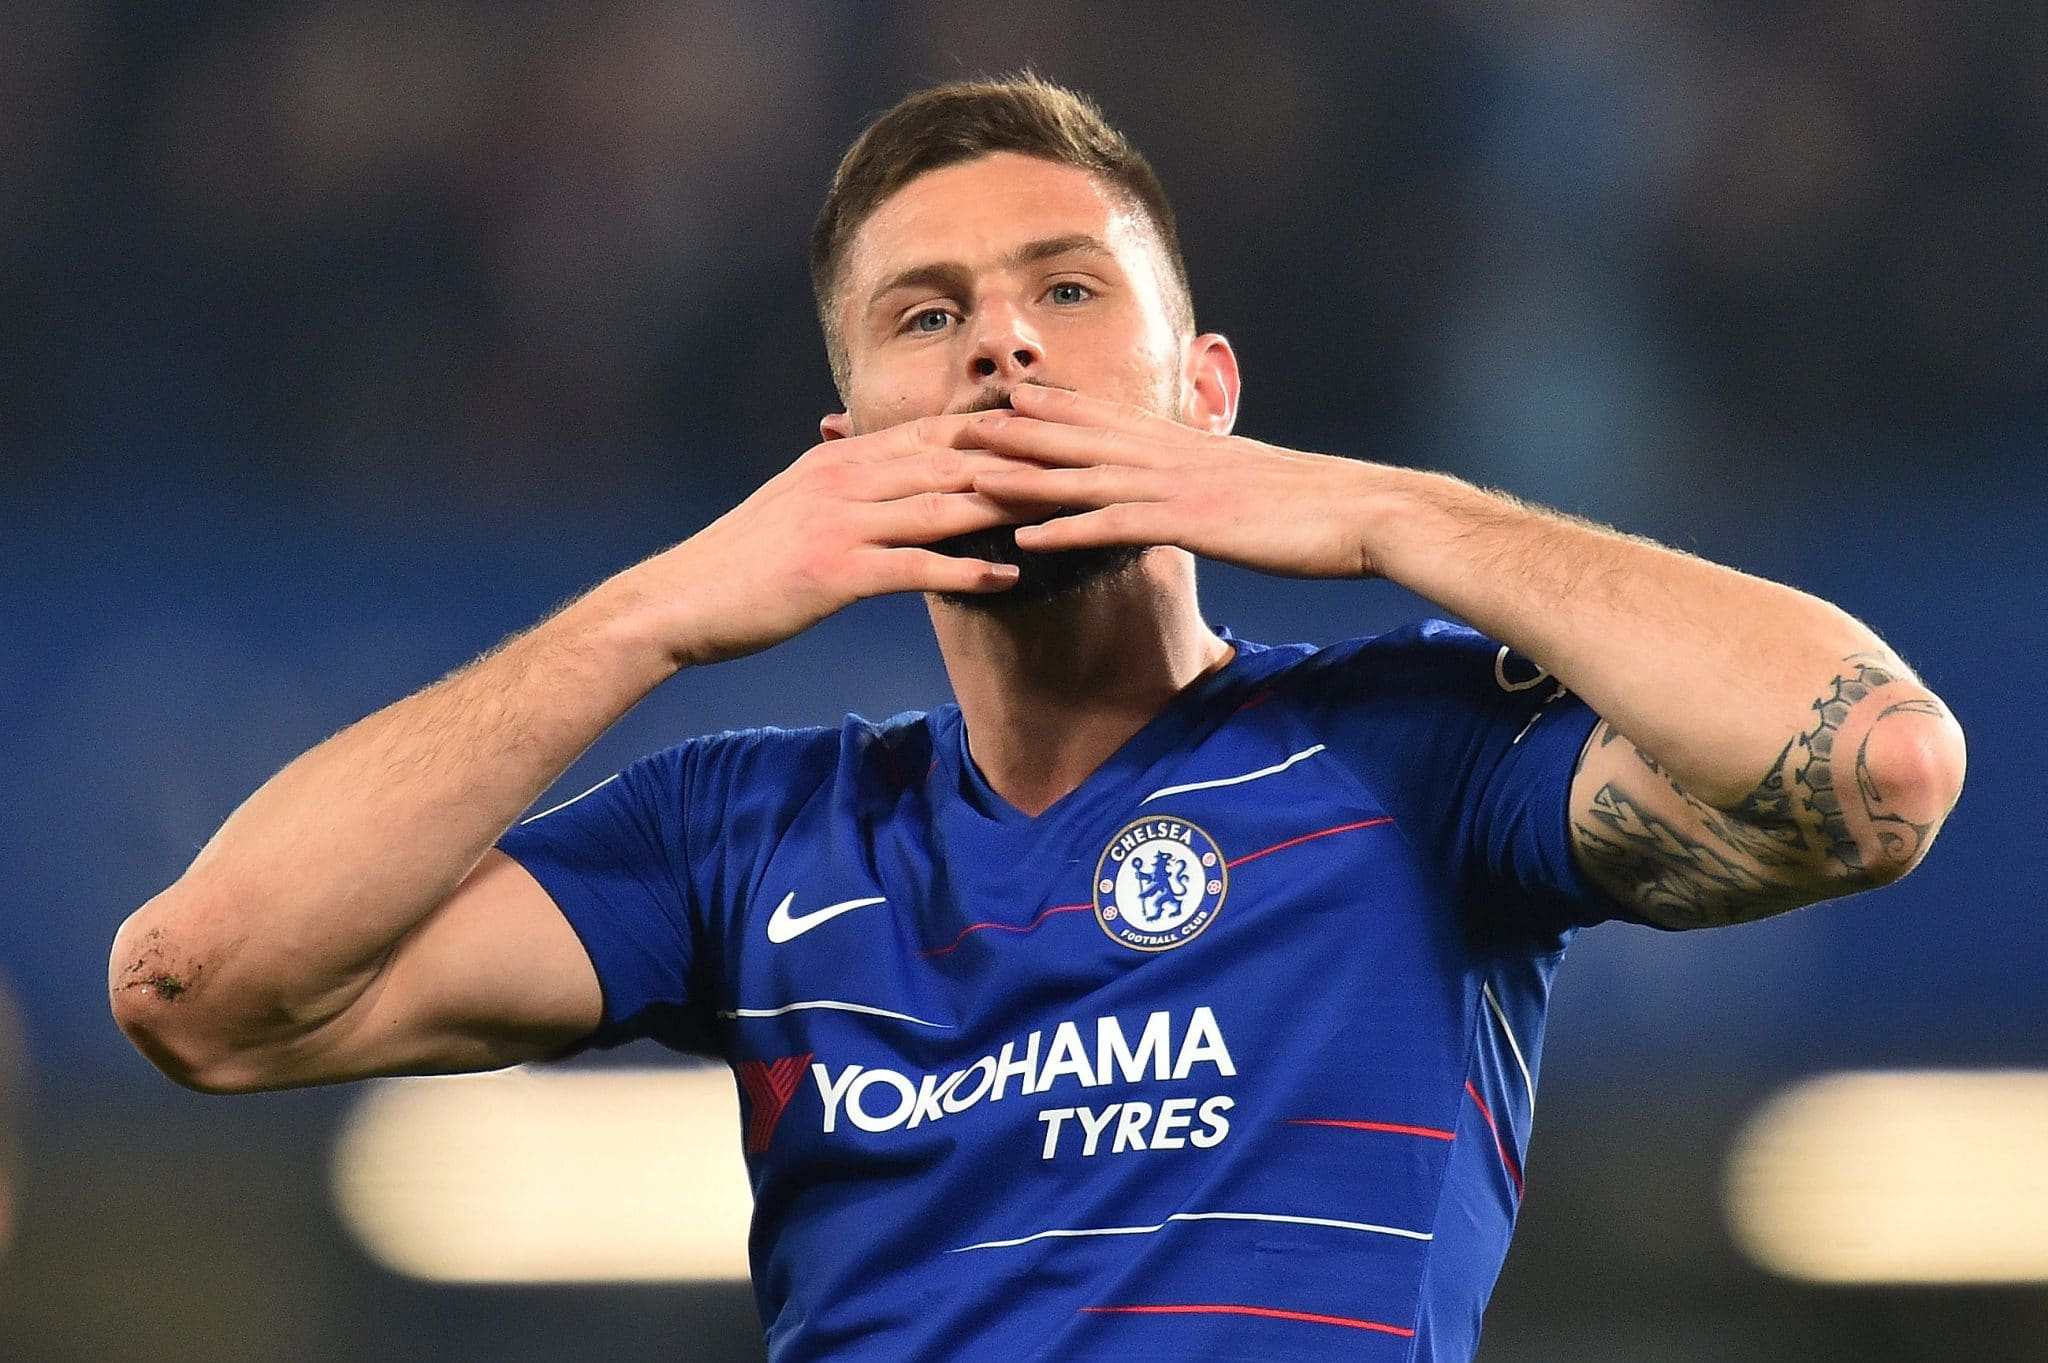 Chelsea striker Olivier Giroud could make a move during the January transfer window